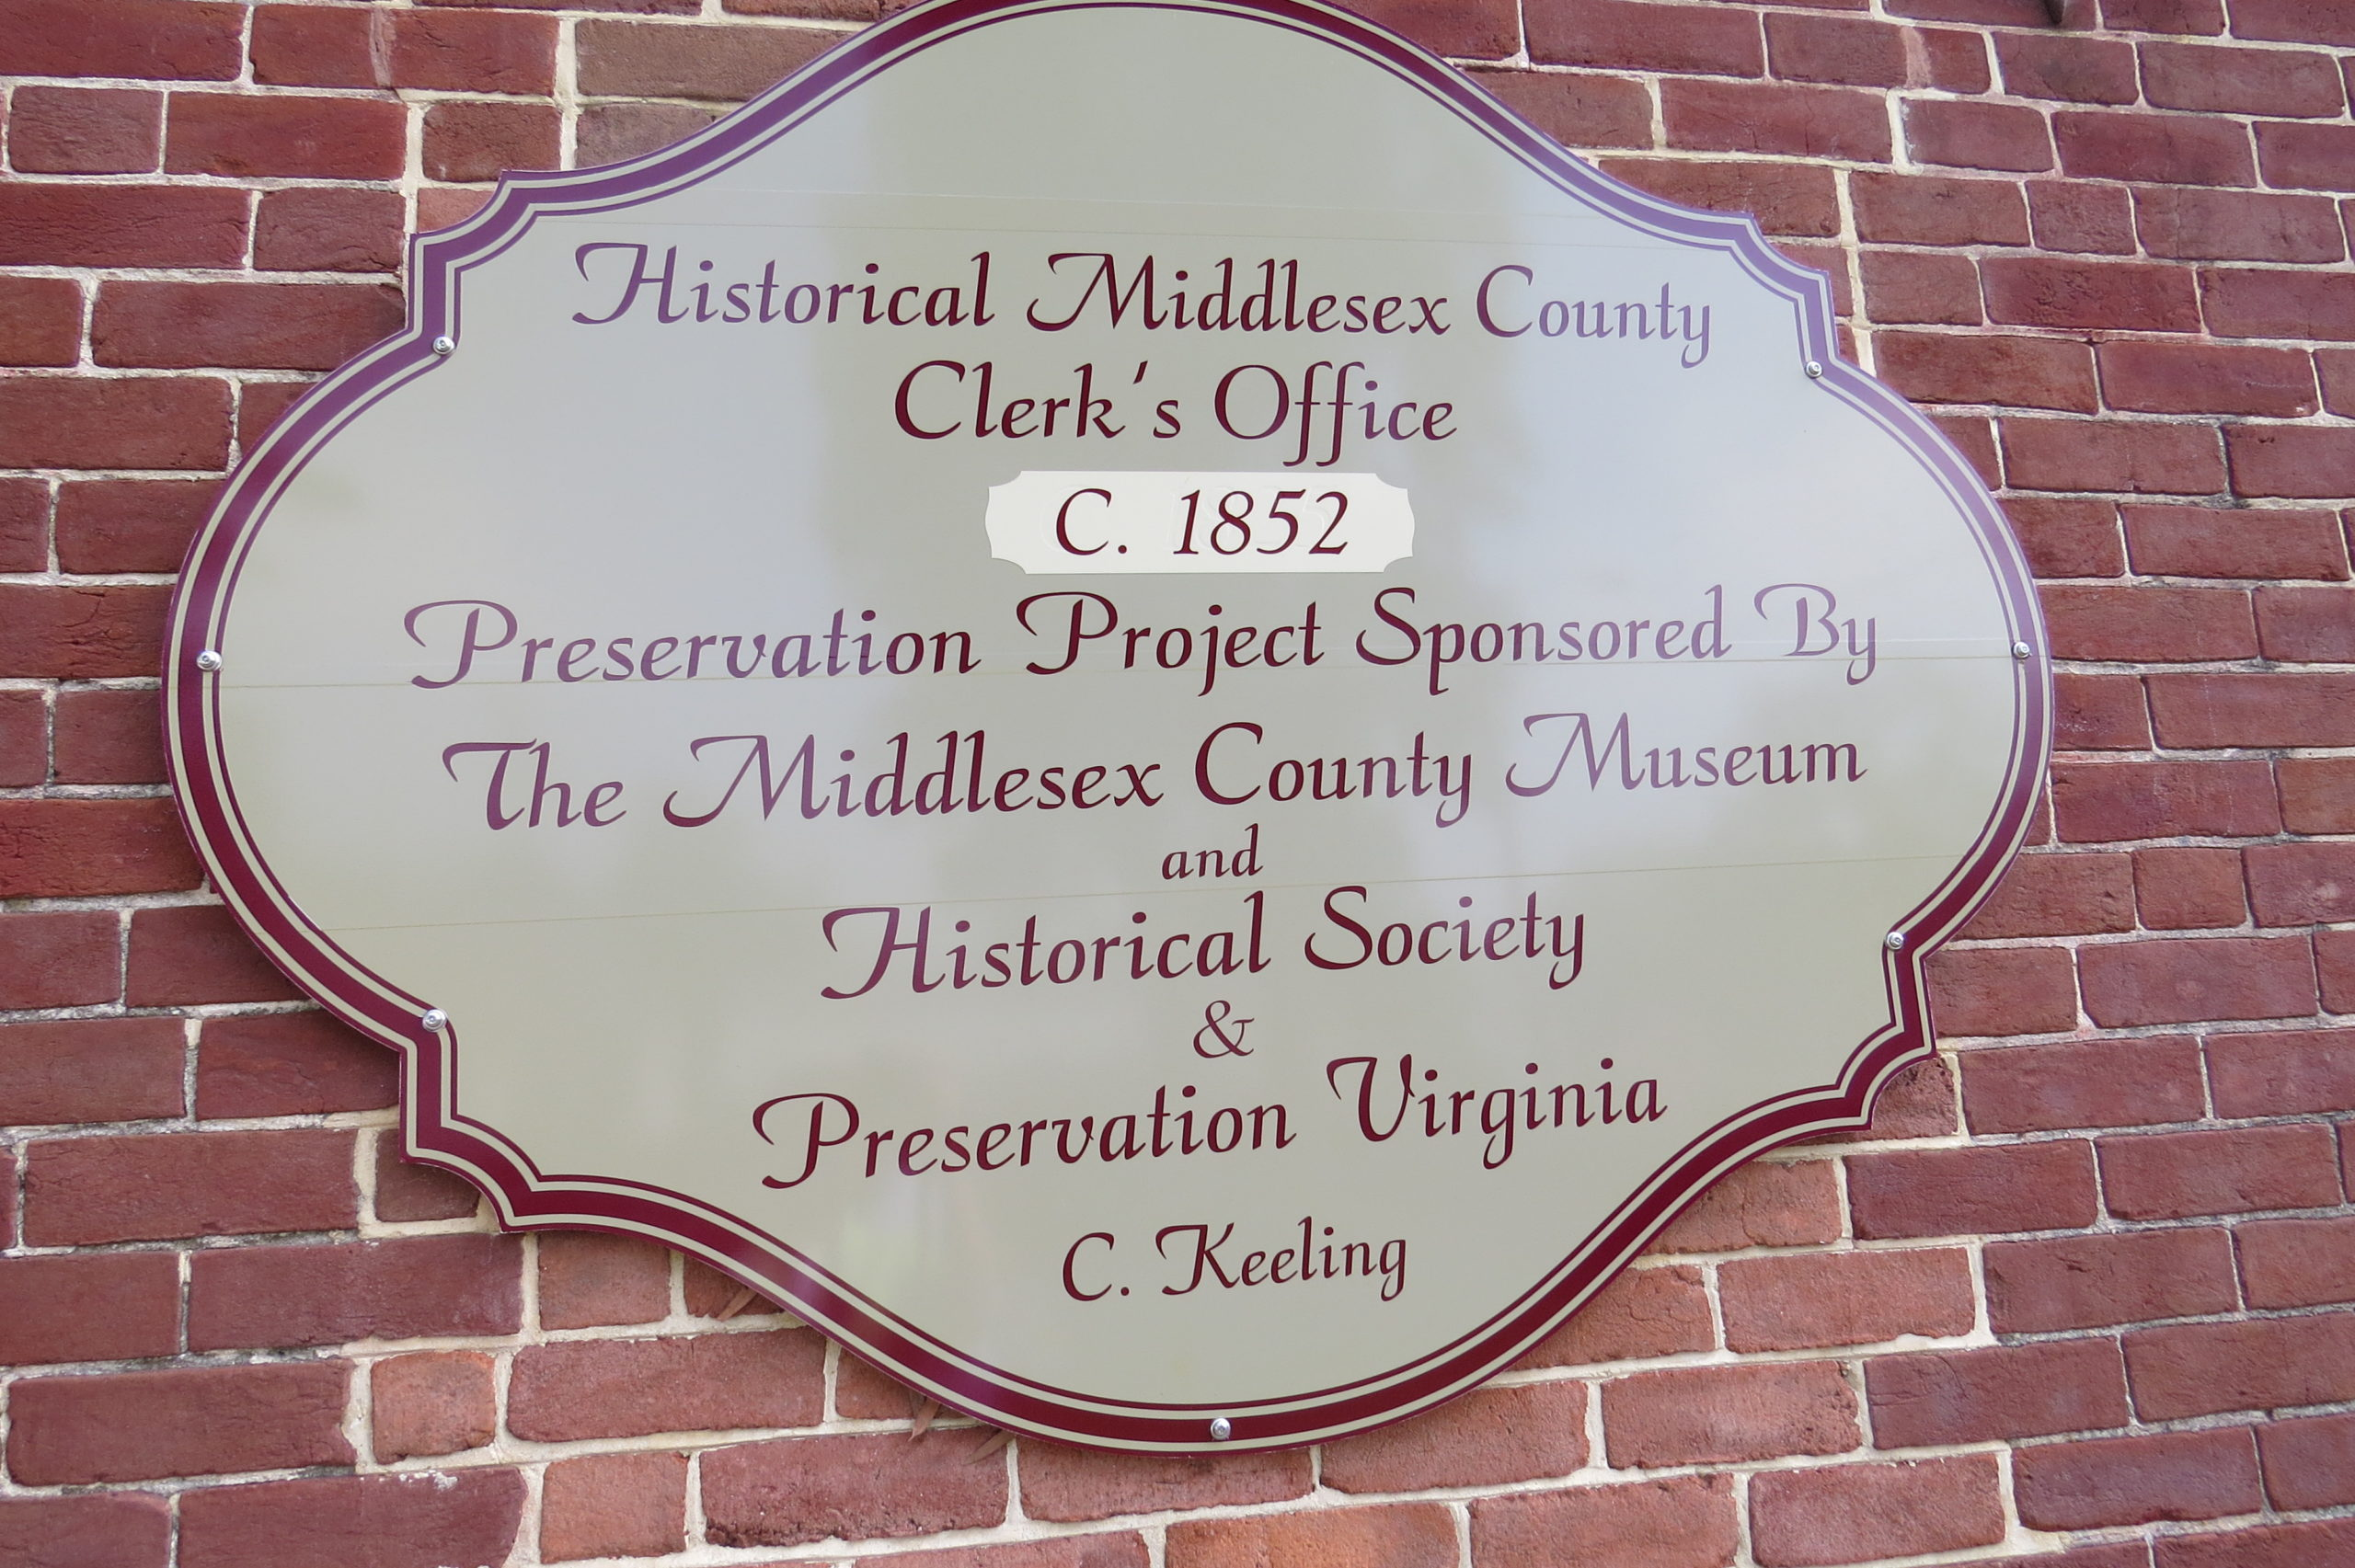 TVHS VISITS MIDDLESEX COUNTY   Tidewater Virginia Historical